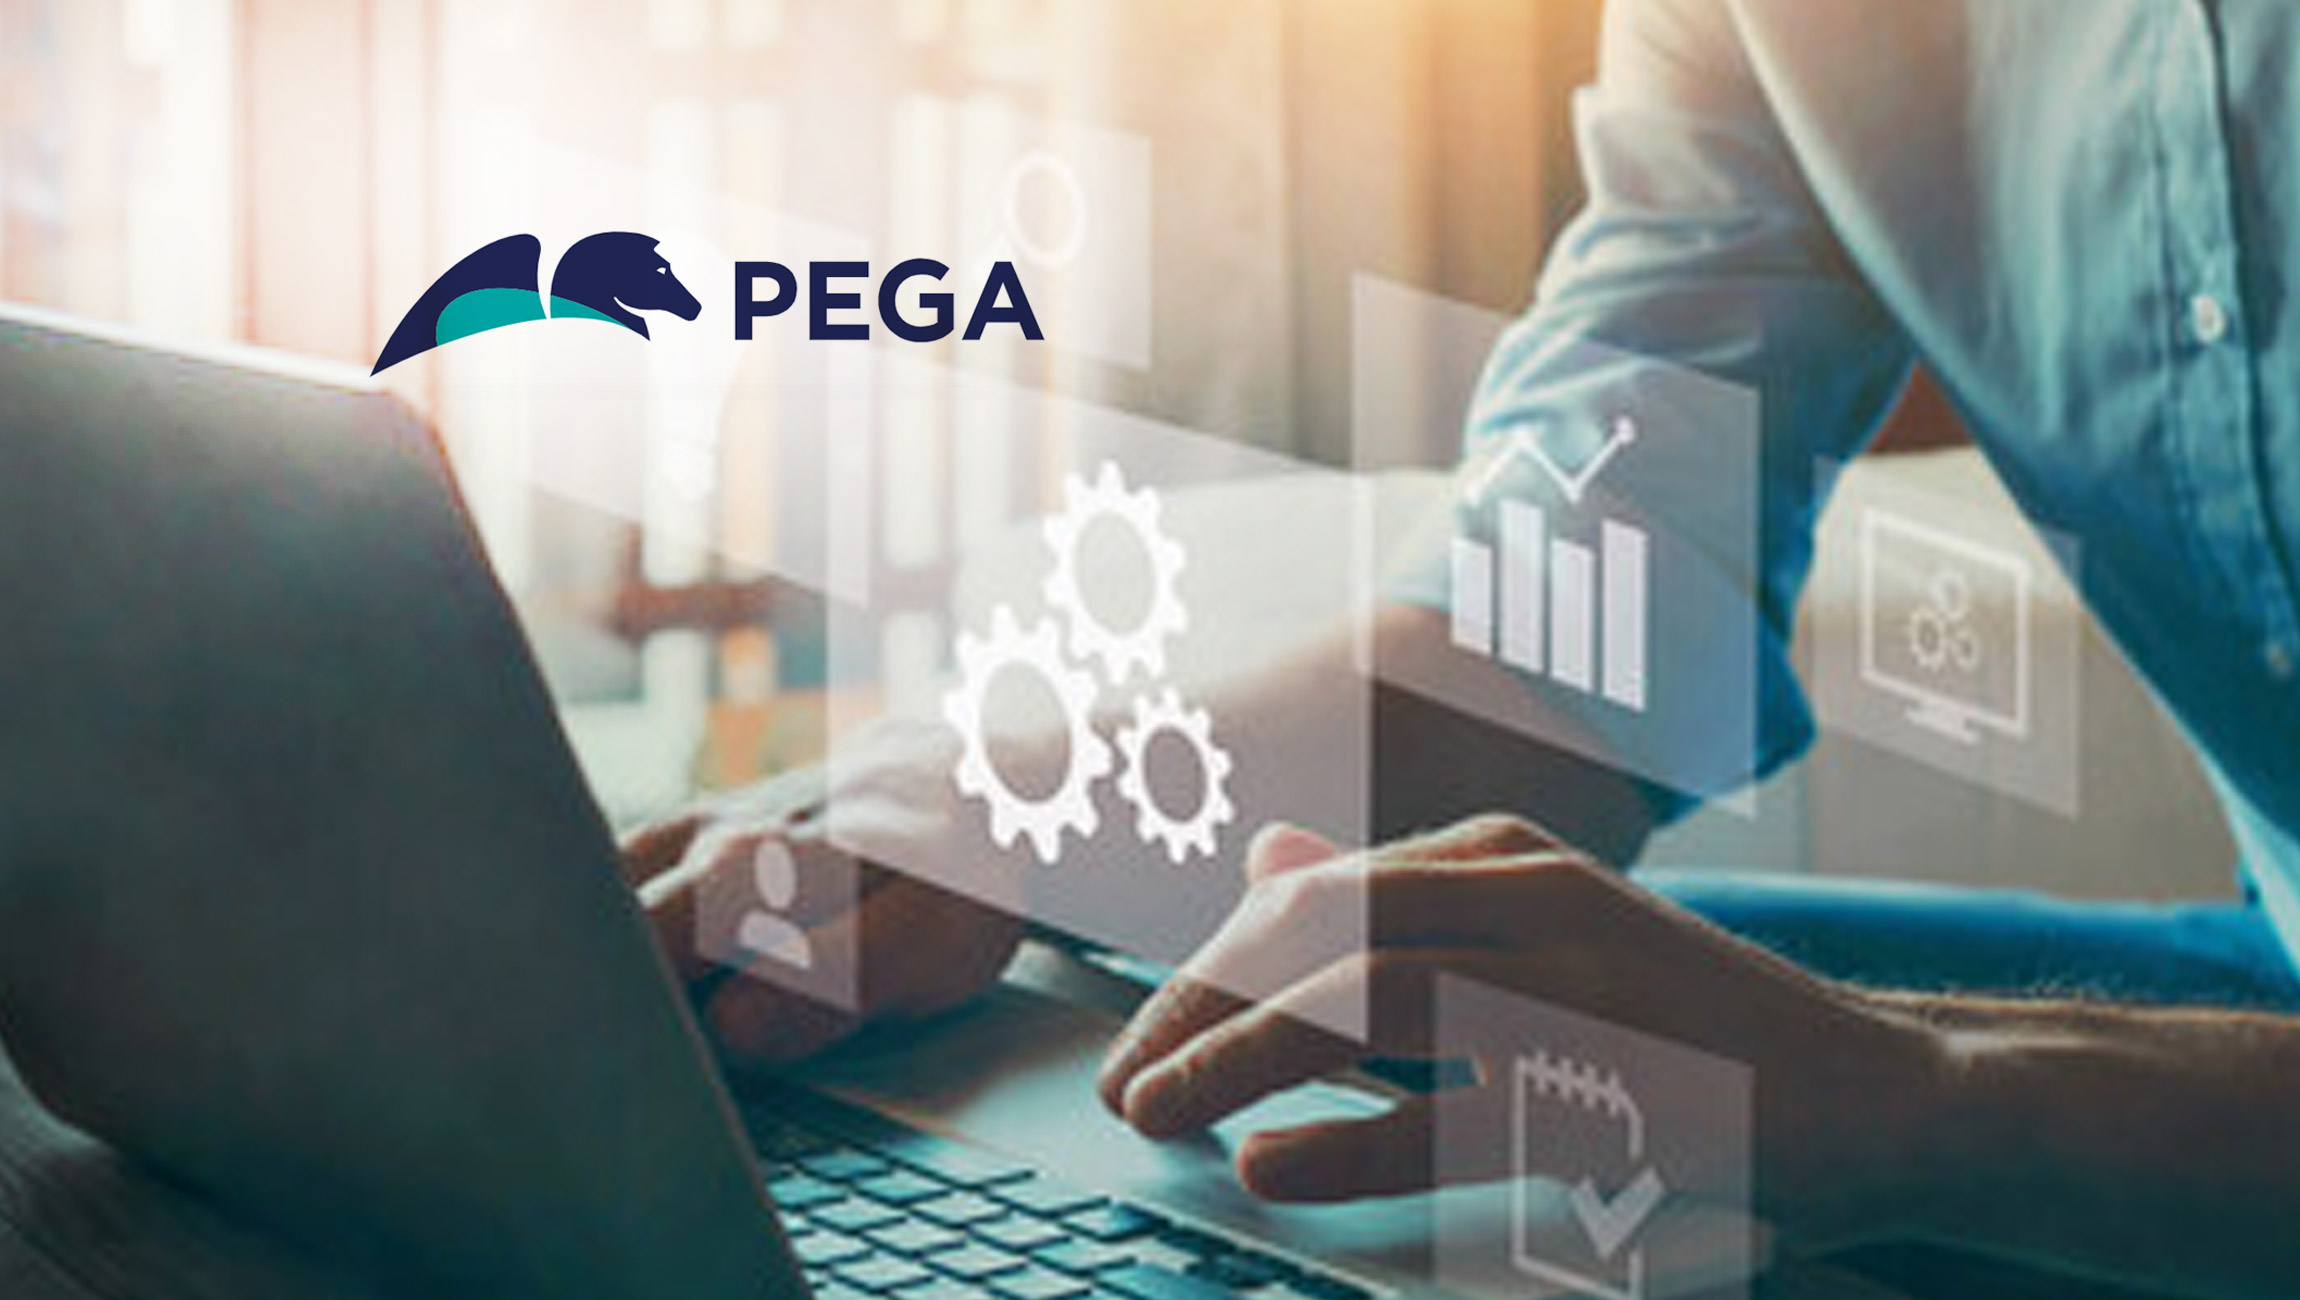 Pega Launches New Partner Program to Help Drive Increased Client Value and Delivery Excellence